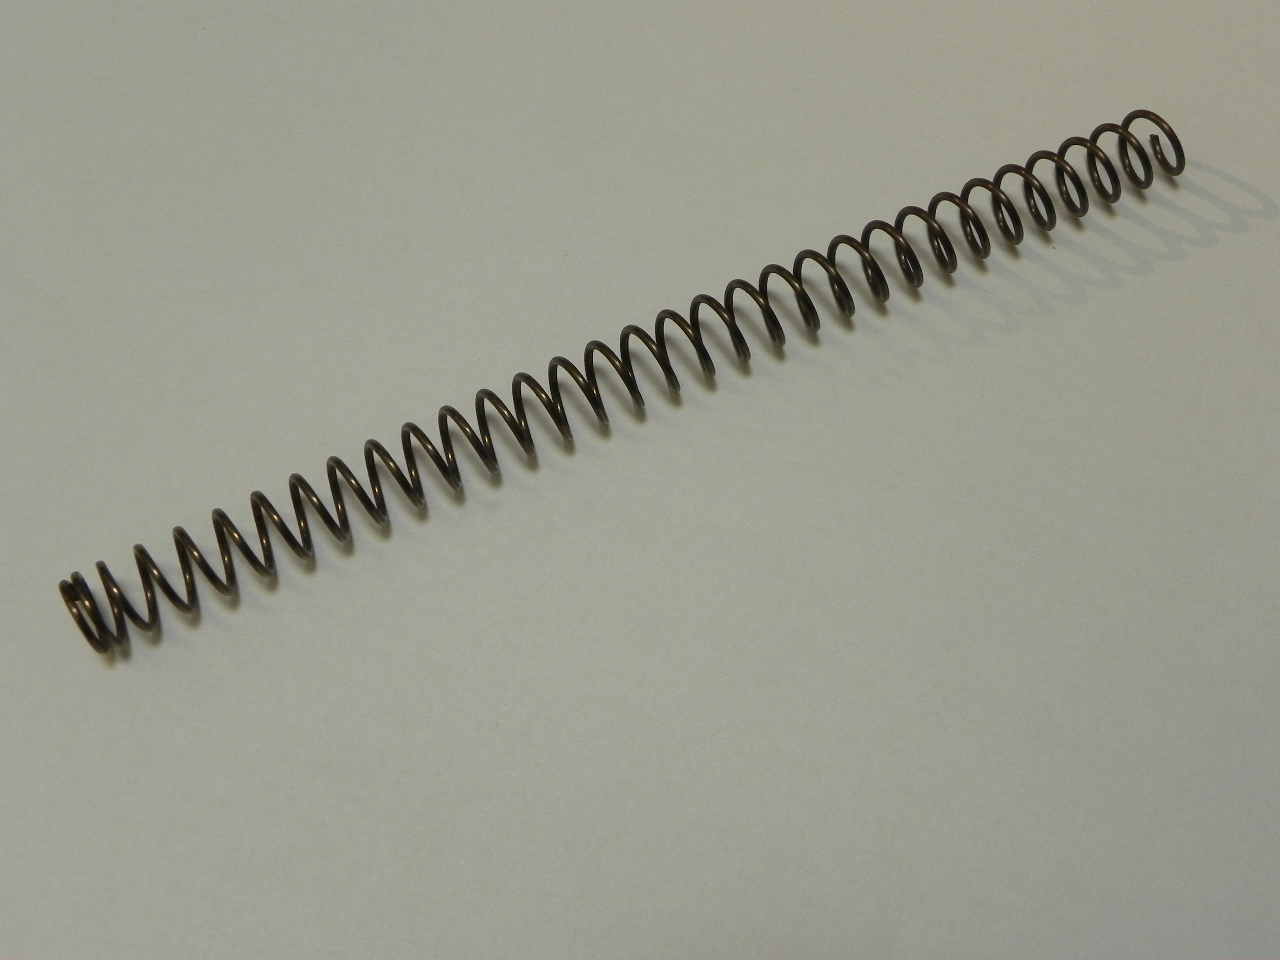 89896 - 1911 Gov't 18.5 Pound Recoil Spring